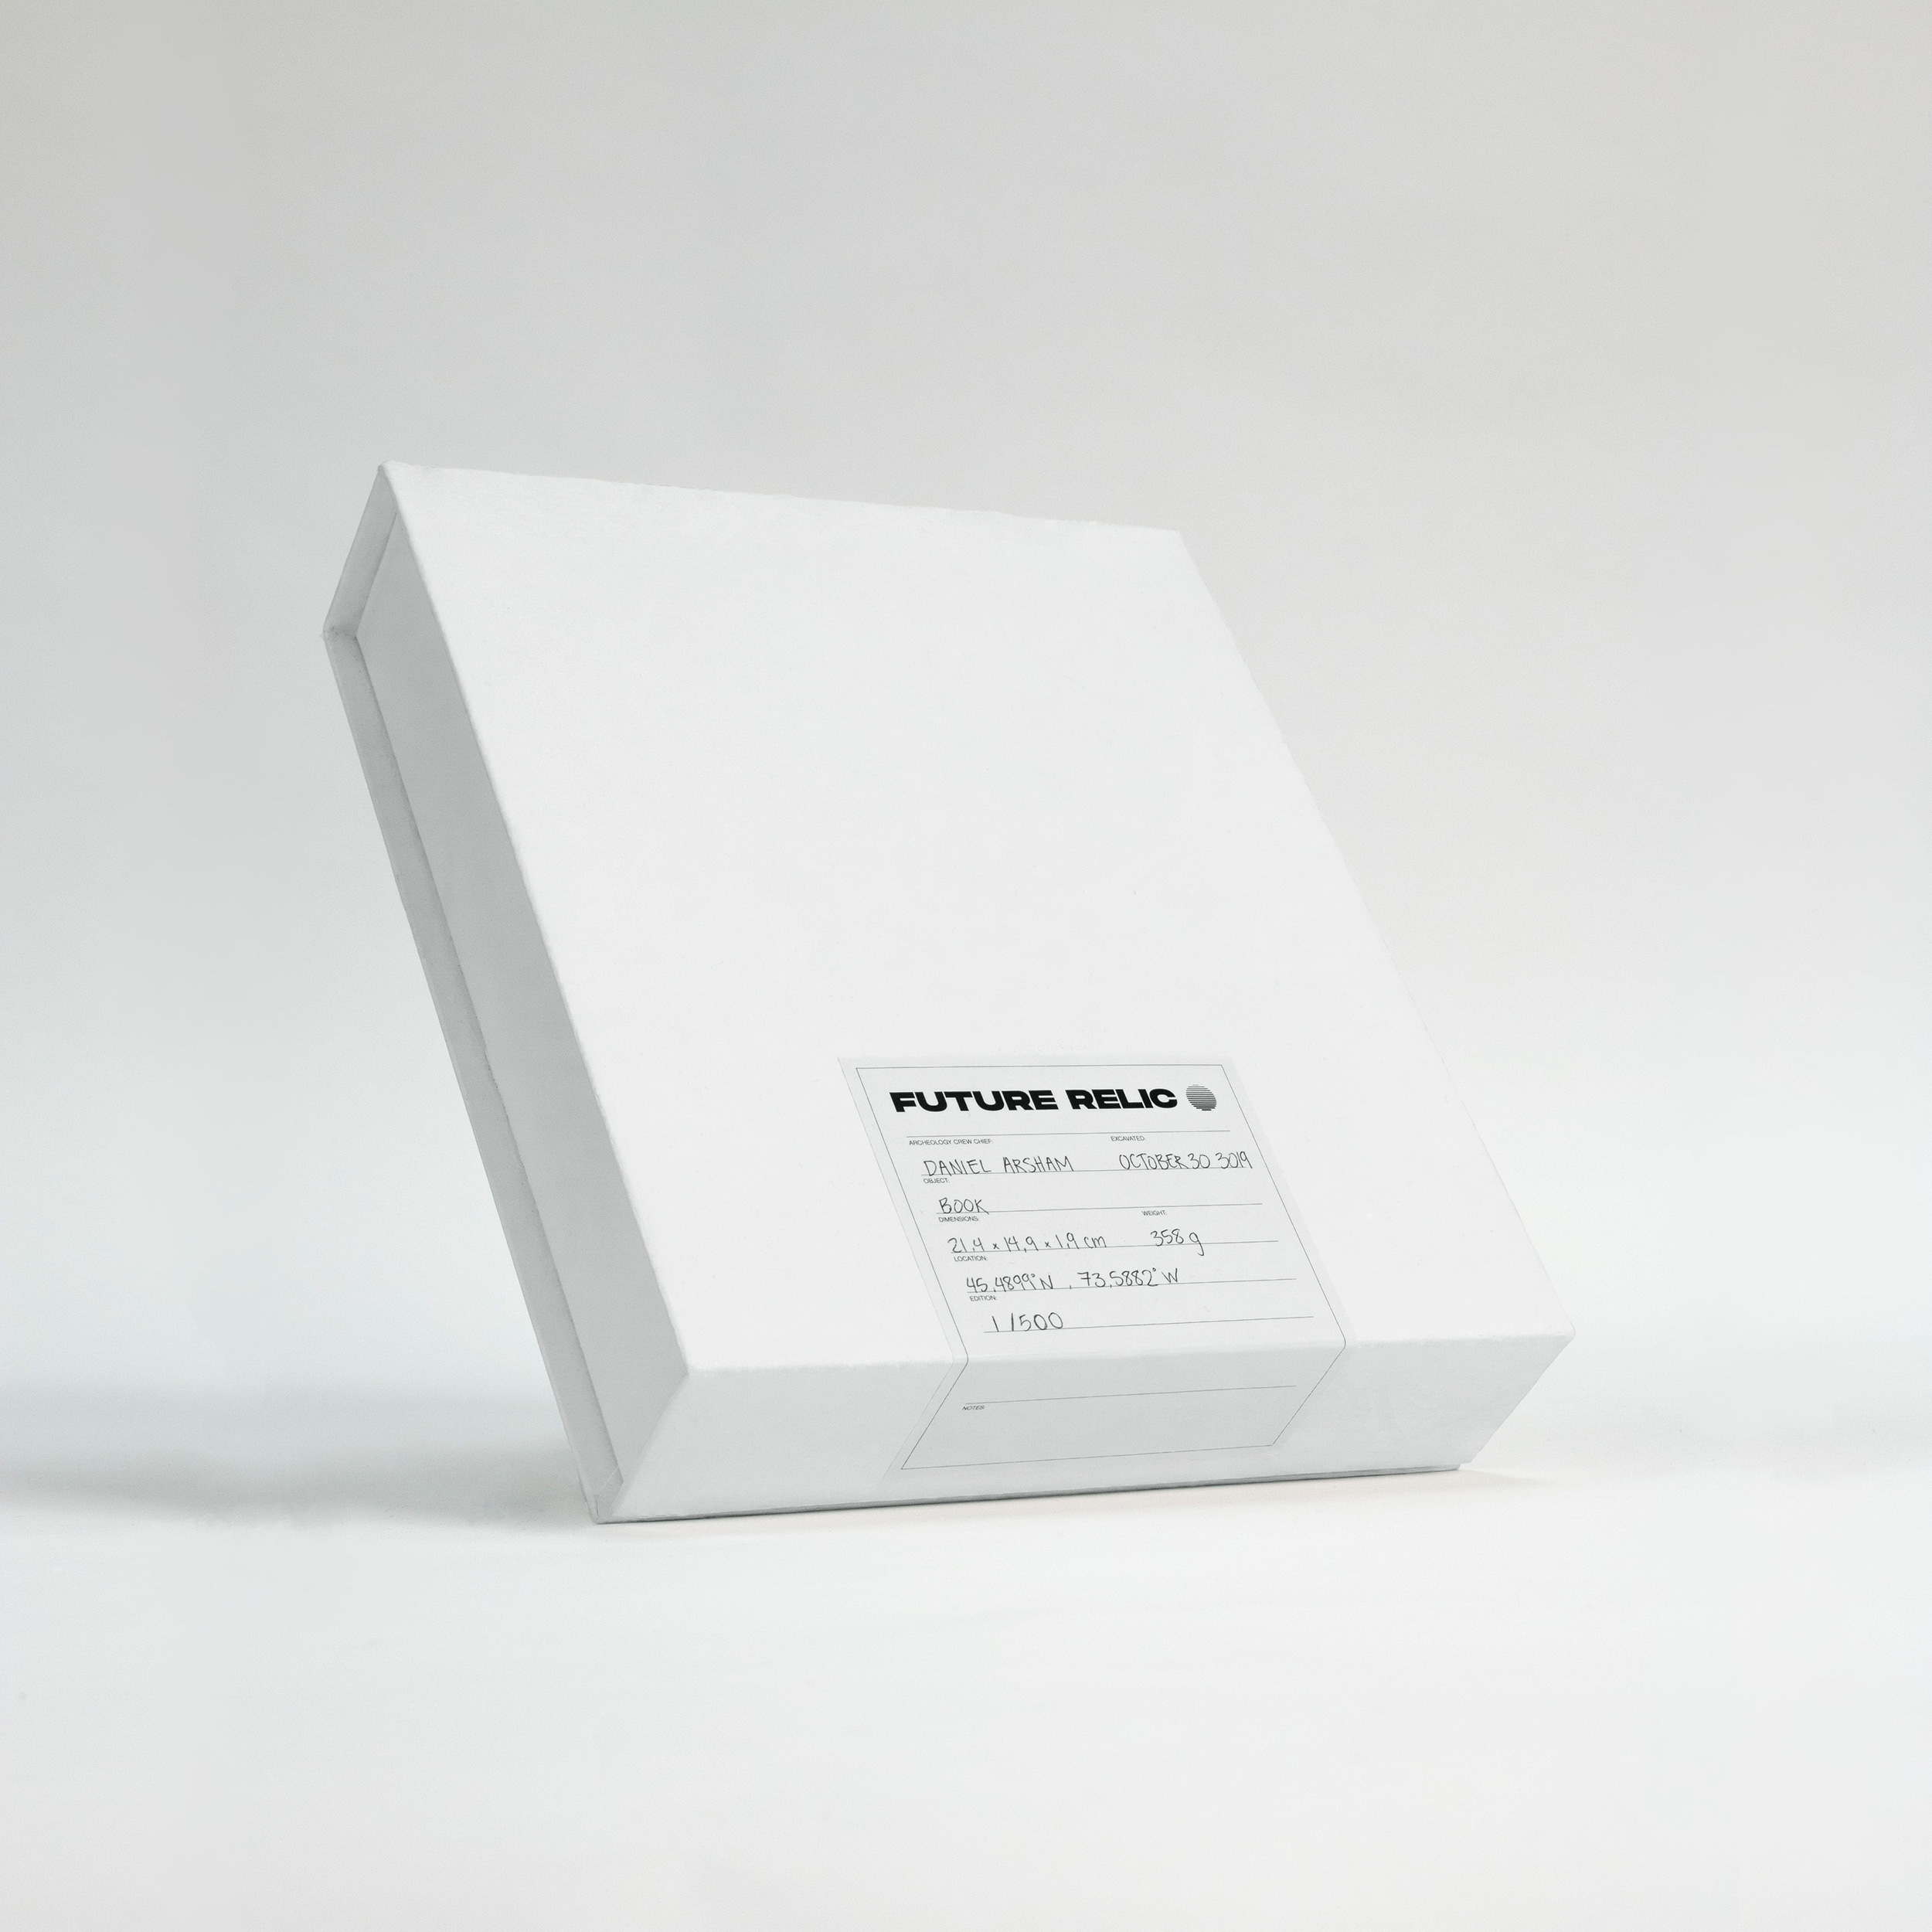 Future Relic white box cover